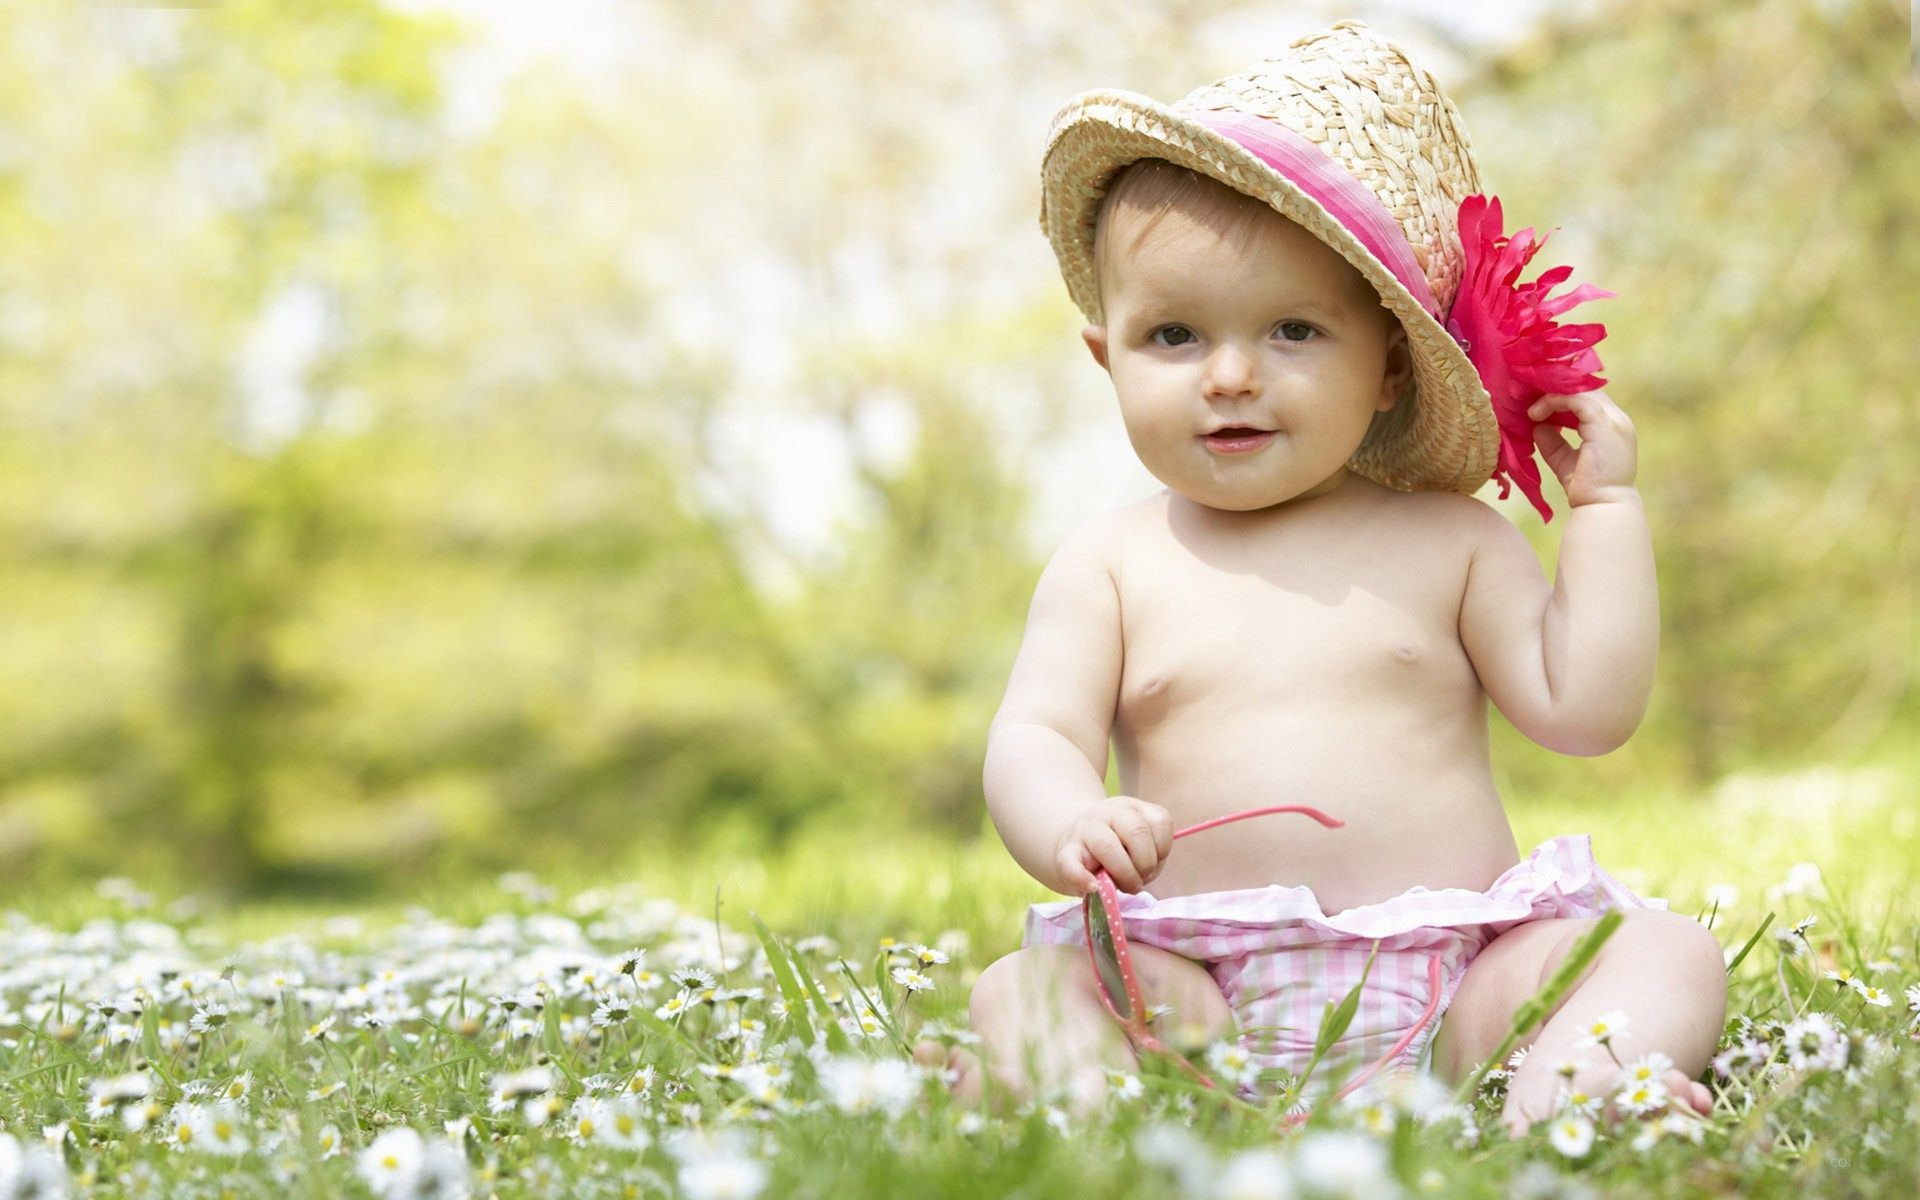 beautiful sweet baby: cute baby girl cute smiling flying kids free